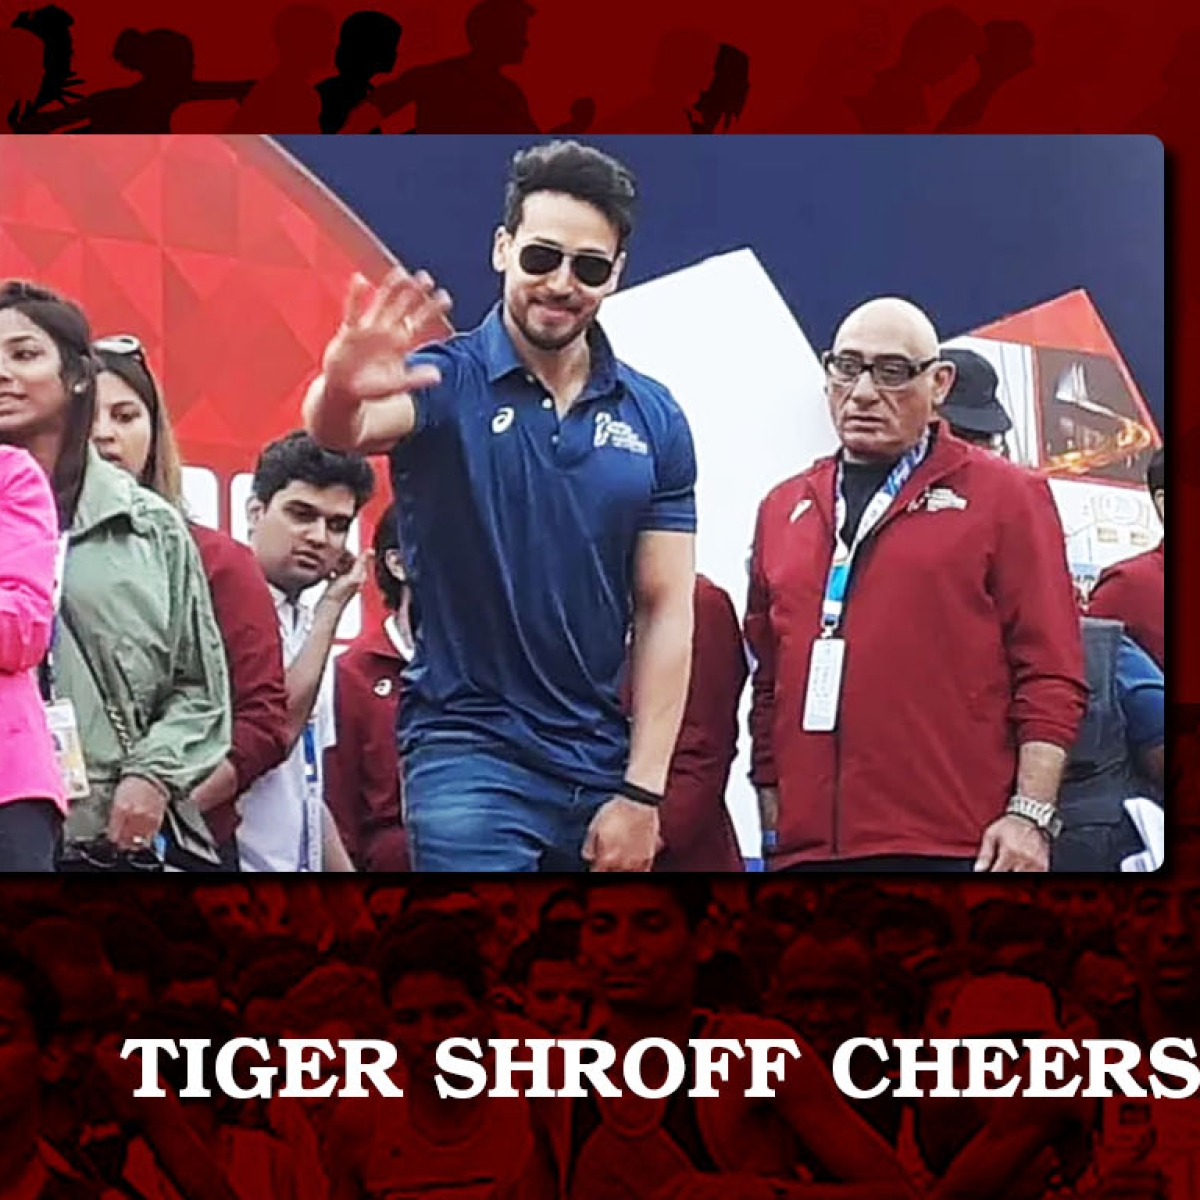 Watch: Tiger Shroff cheers runners at Mumbai Marathon 2020